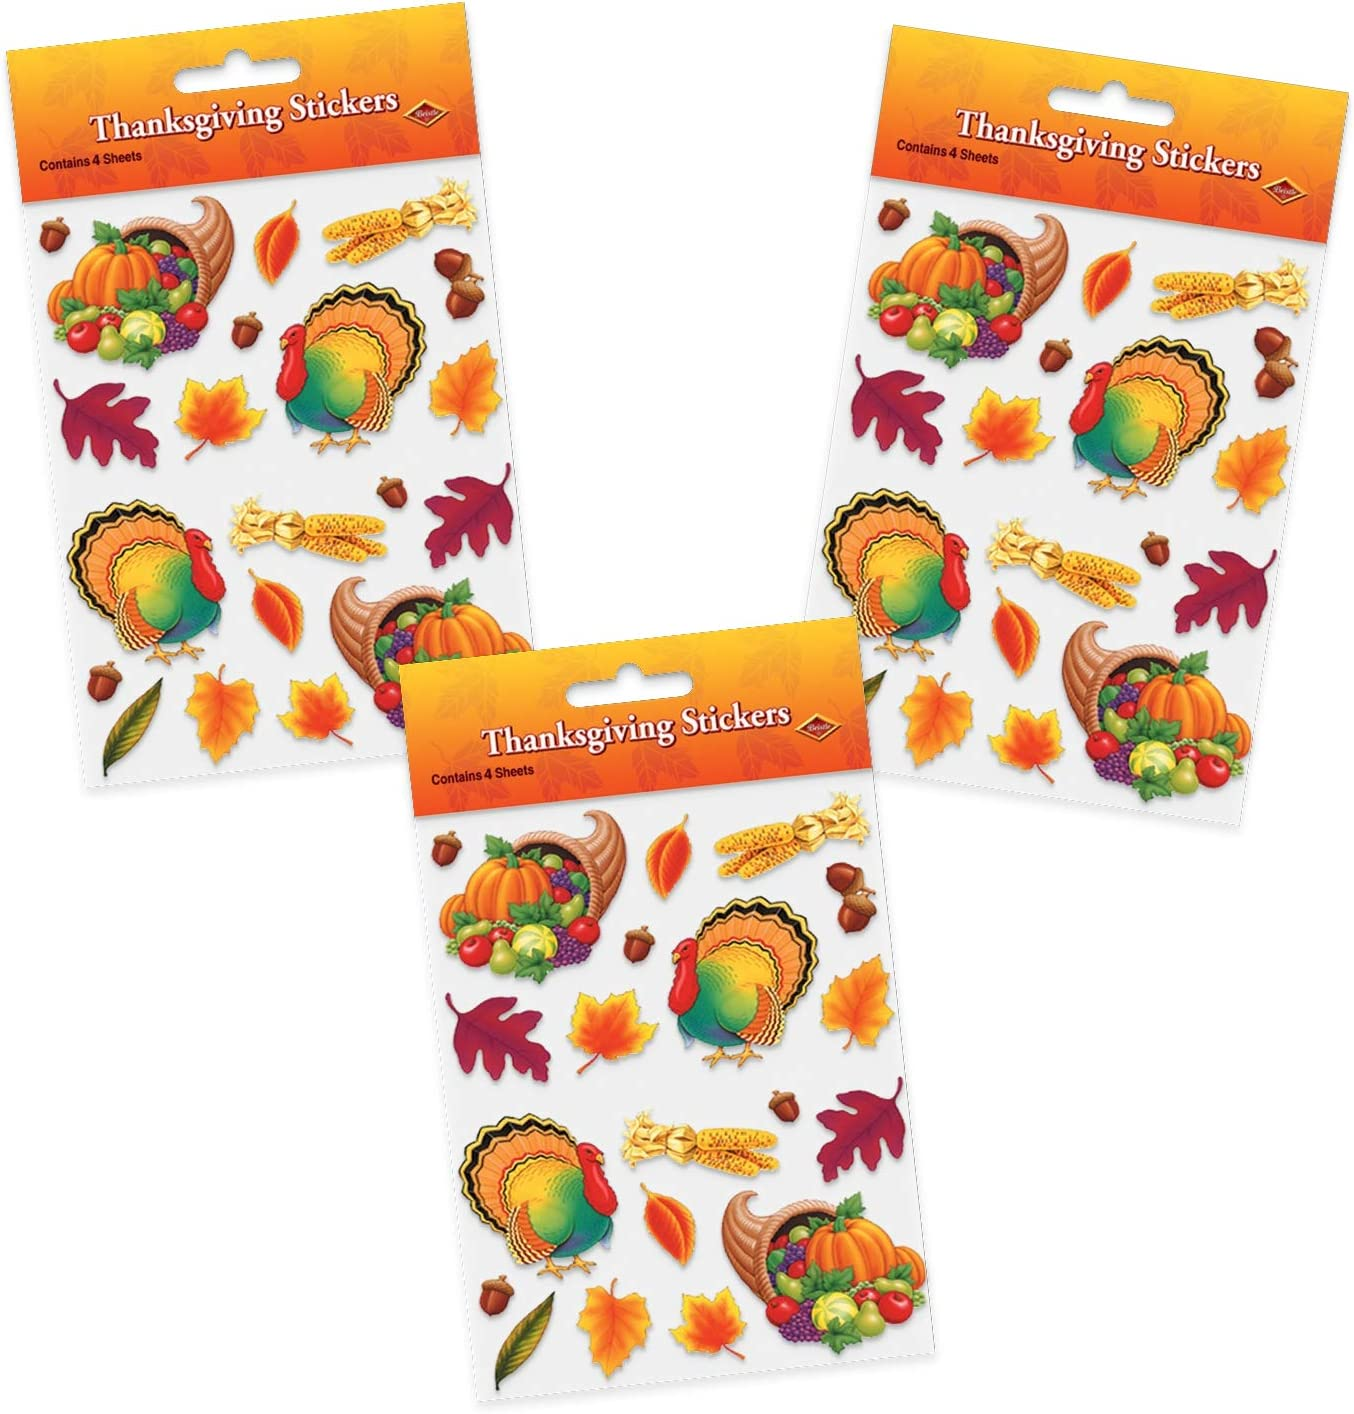 Thanksgiving Stickers (12 Sheets)